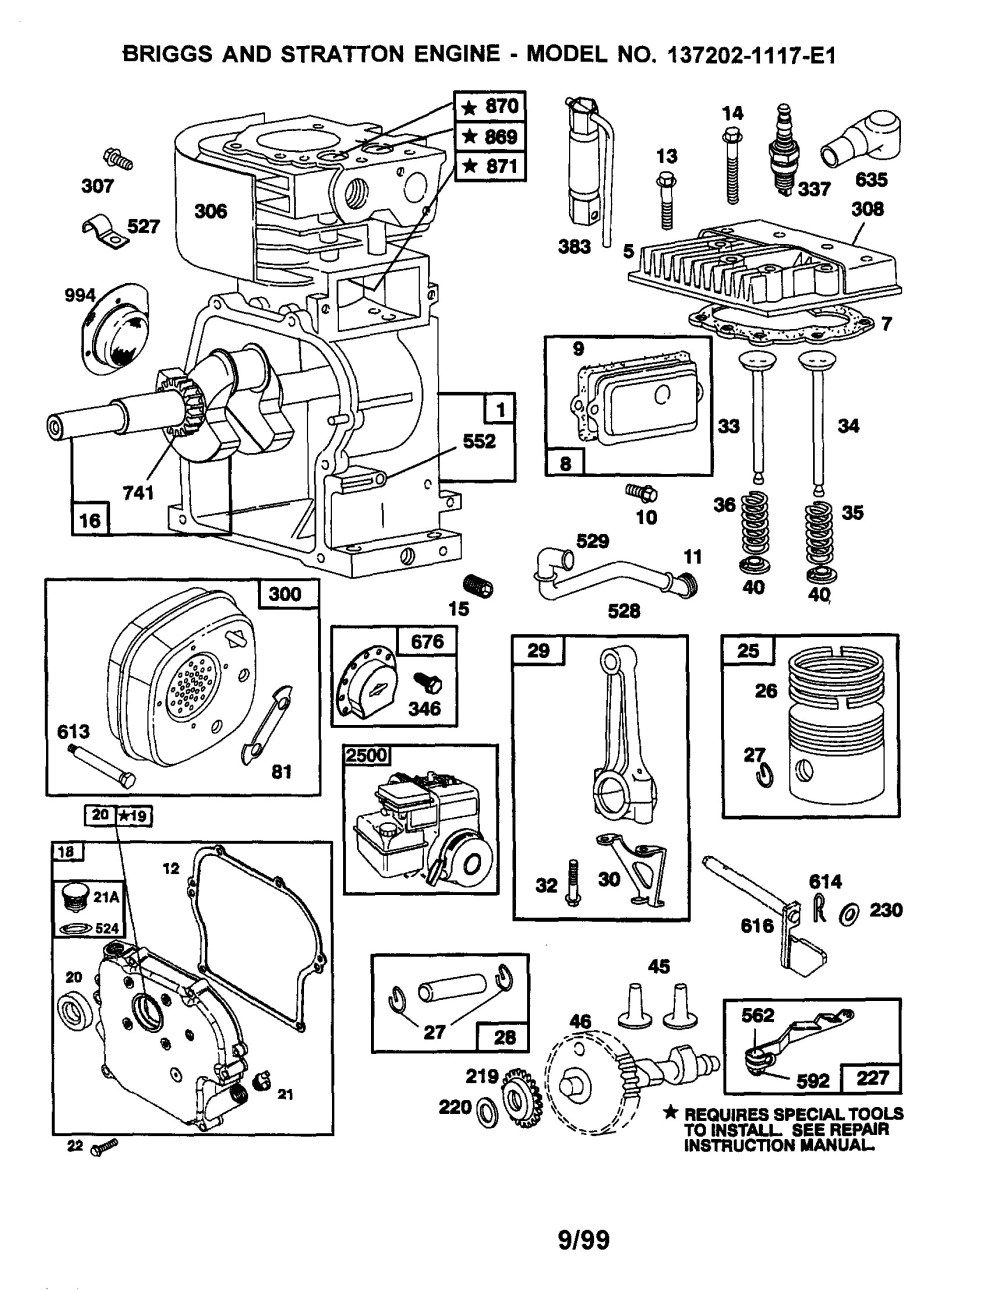 medium resolution of 20 hp briggs and stratton engine diagram wiring diagram used 20 hp briggs and stratton engine diagram moreover briggs and stratton